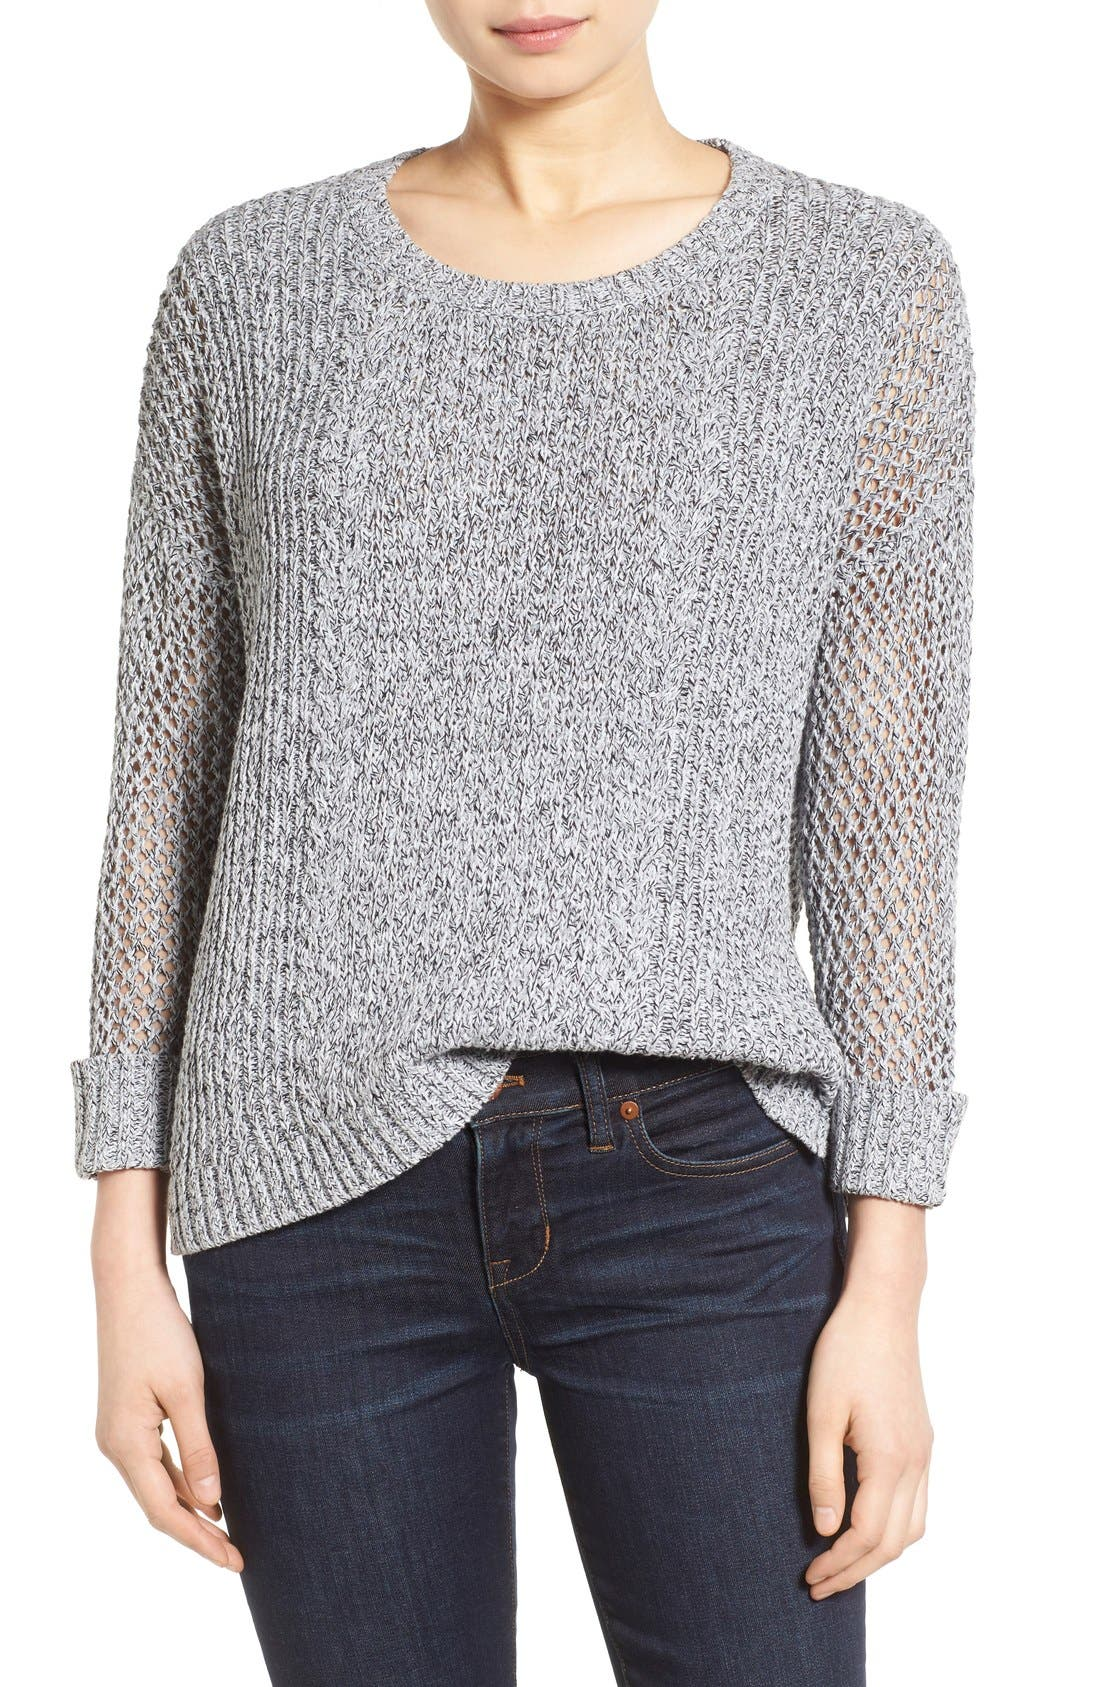 Alternate Image 1 Selected - Madewell 'Karlie' Cable Knit Sweater